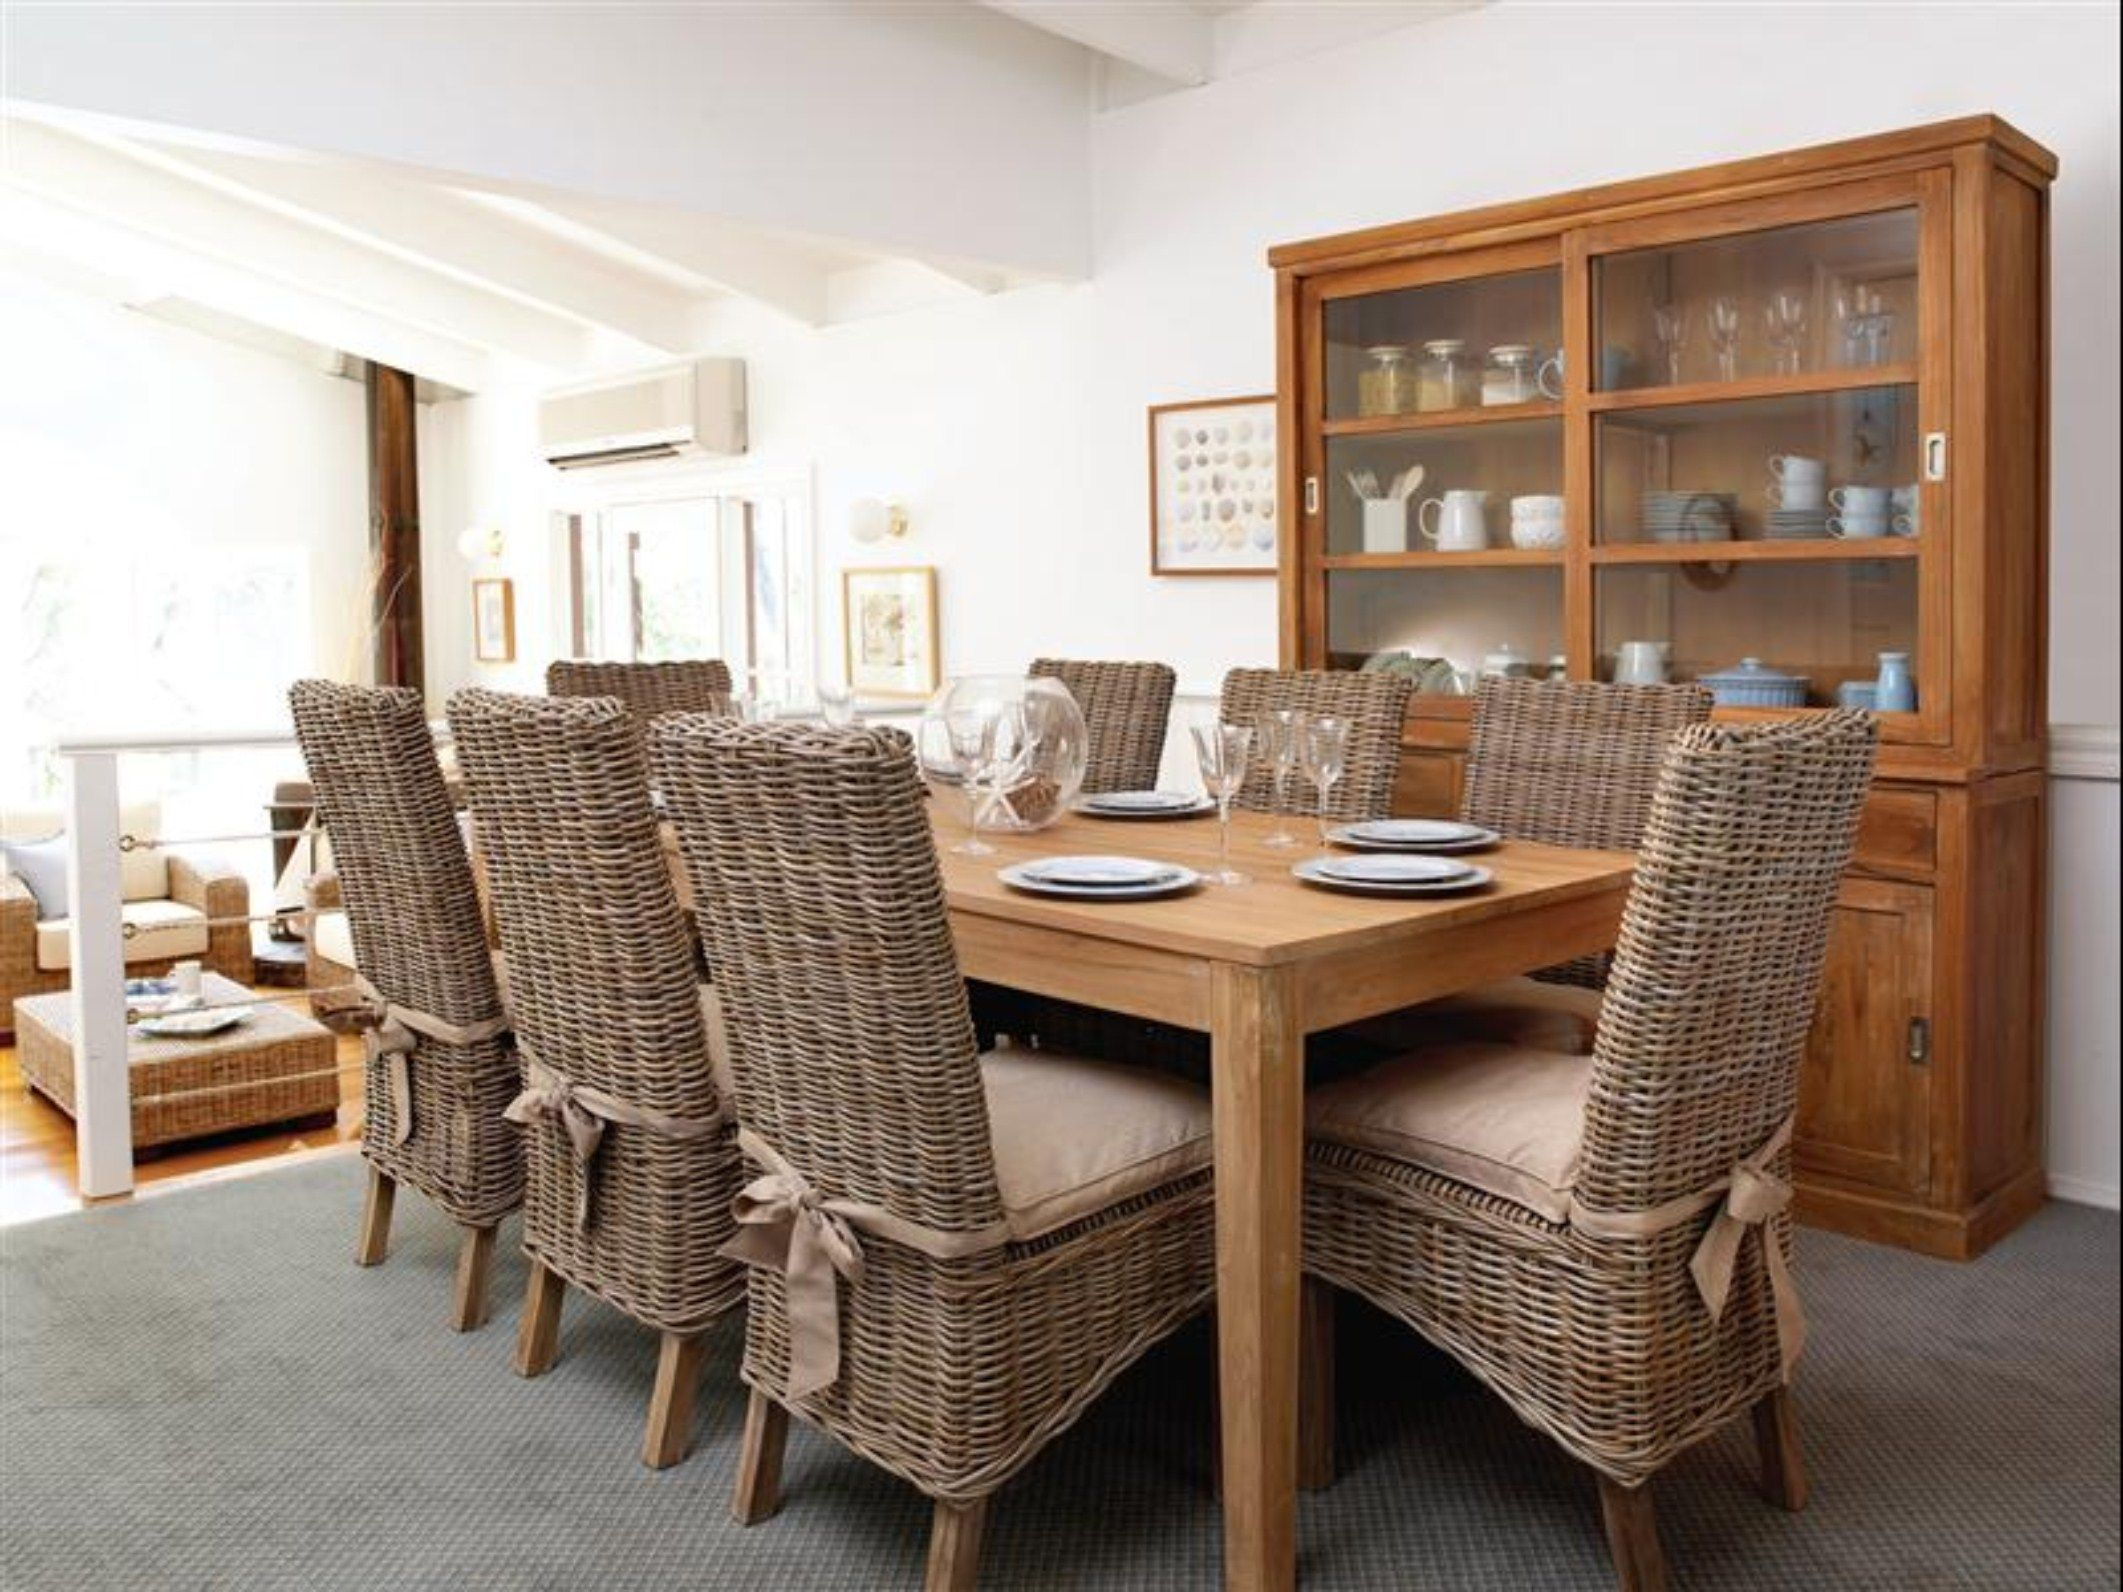 Contemporary Dining Room Tables And Chairs Pleasing Contemporary Dining Room Design Ideas Featuring Natural Design Decoration